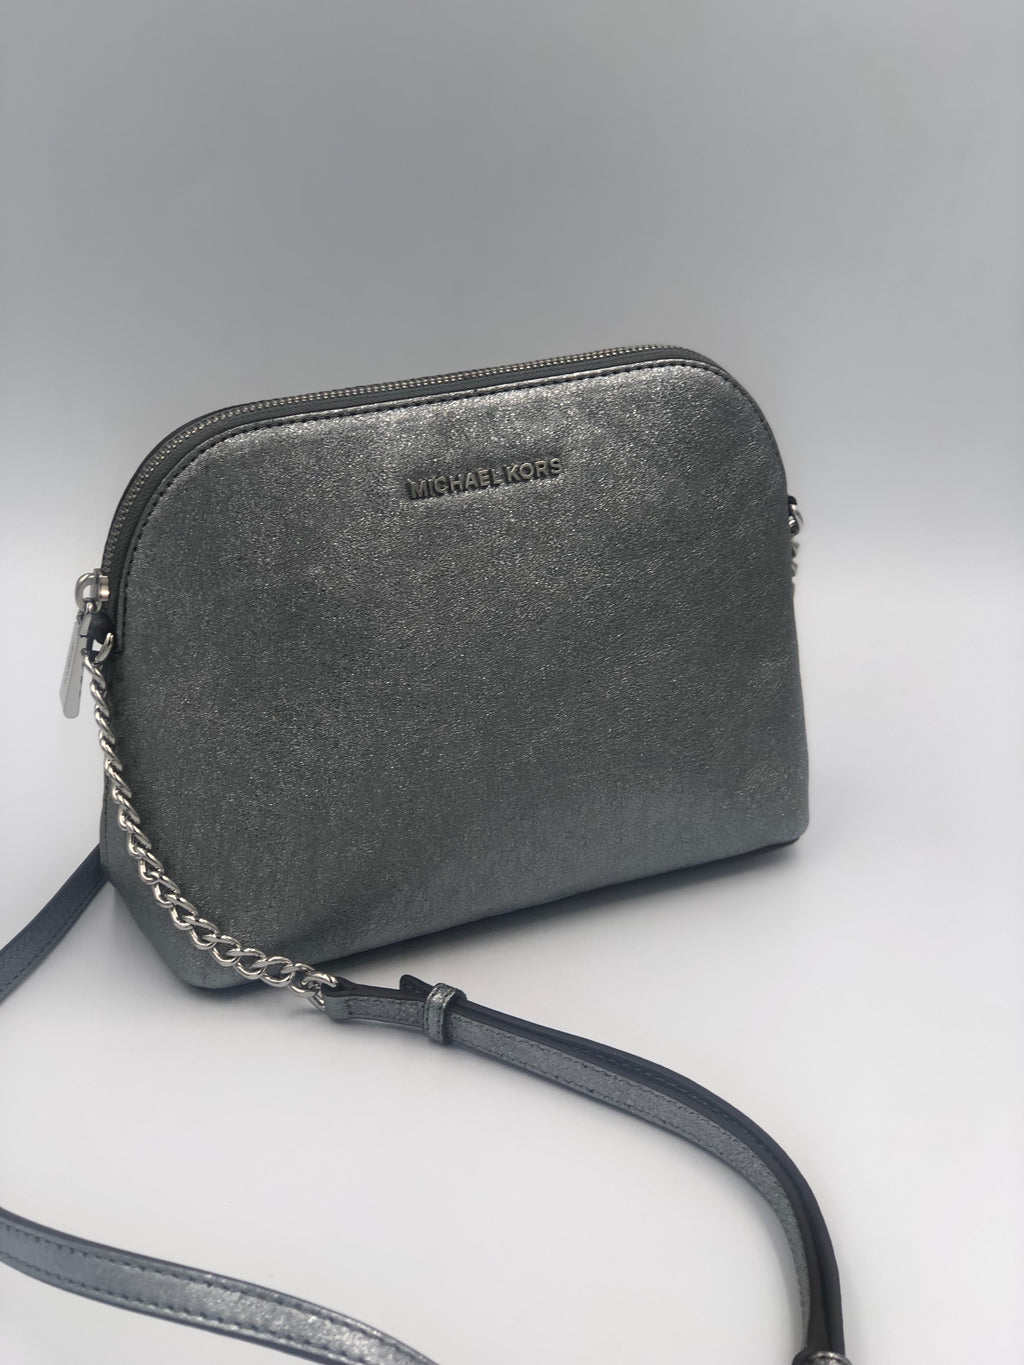 Cartera Crossbody Michael Kors